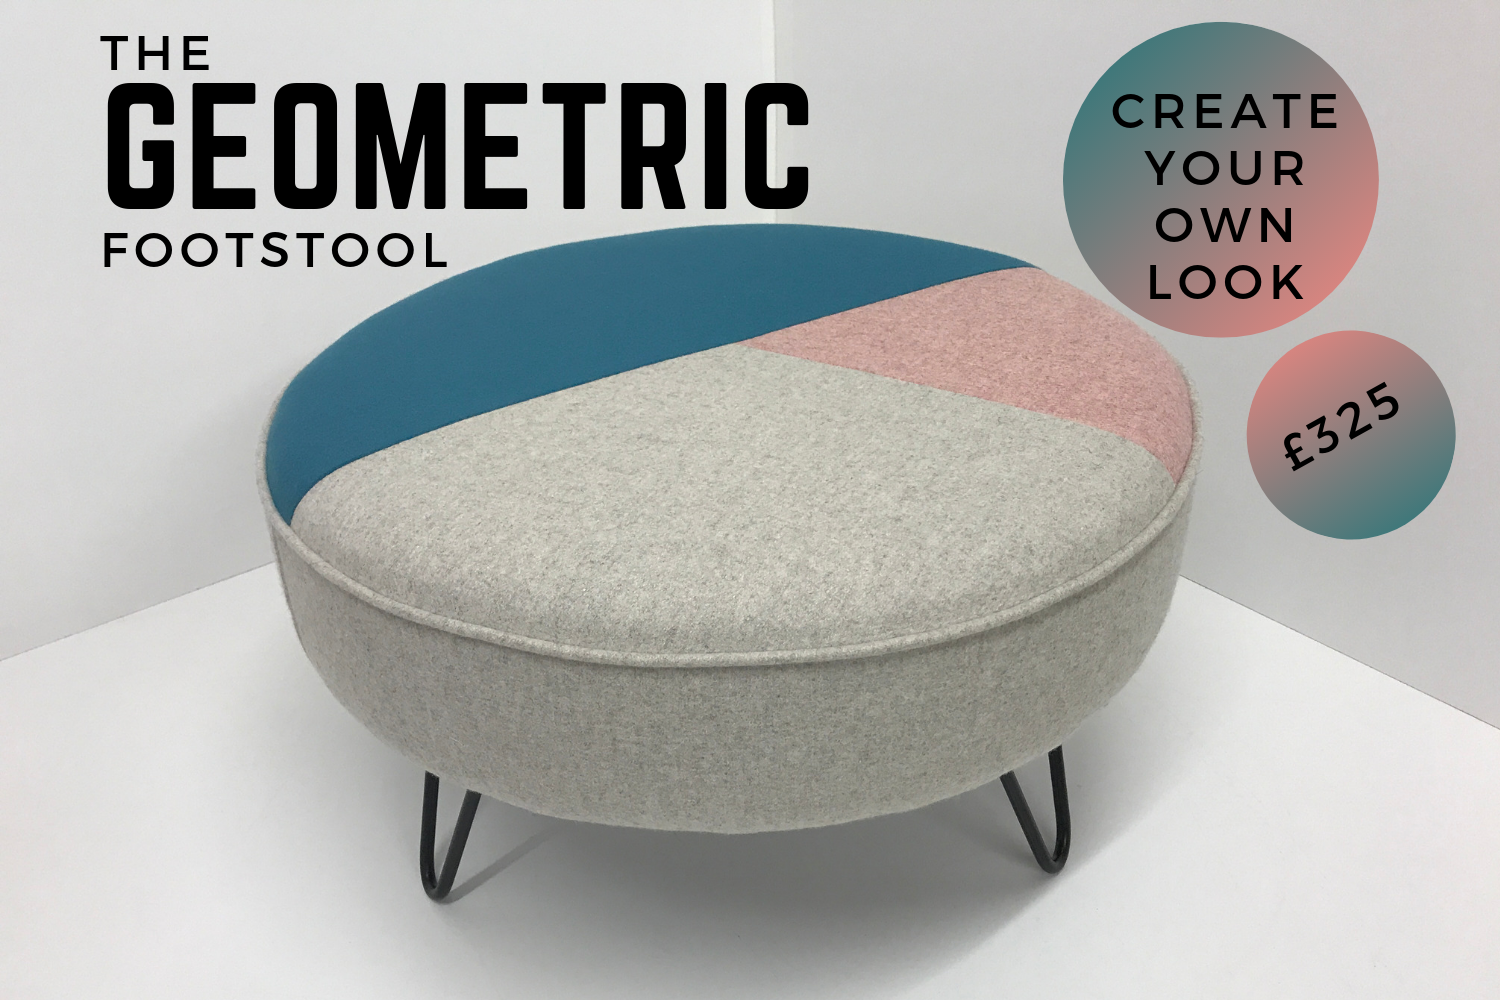 Geometric Footstool